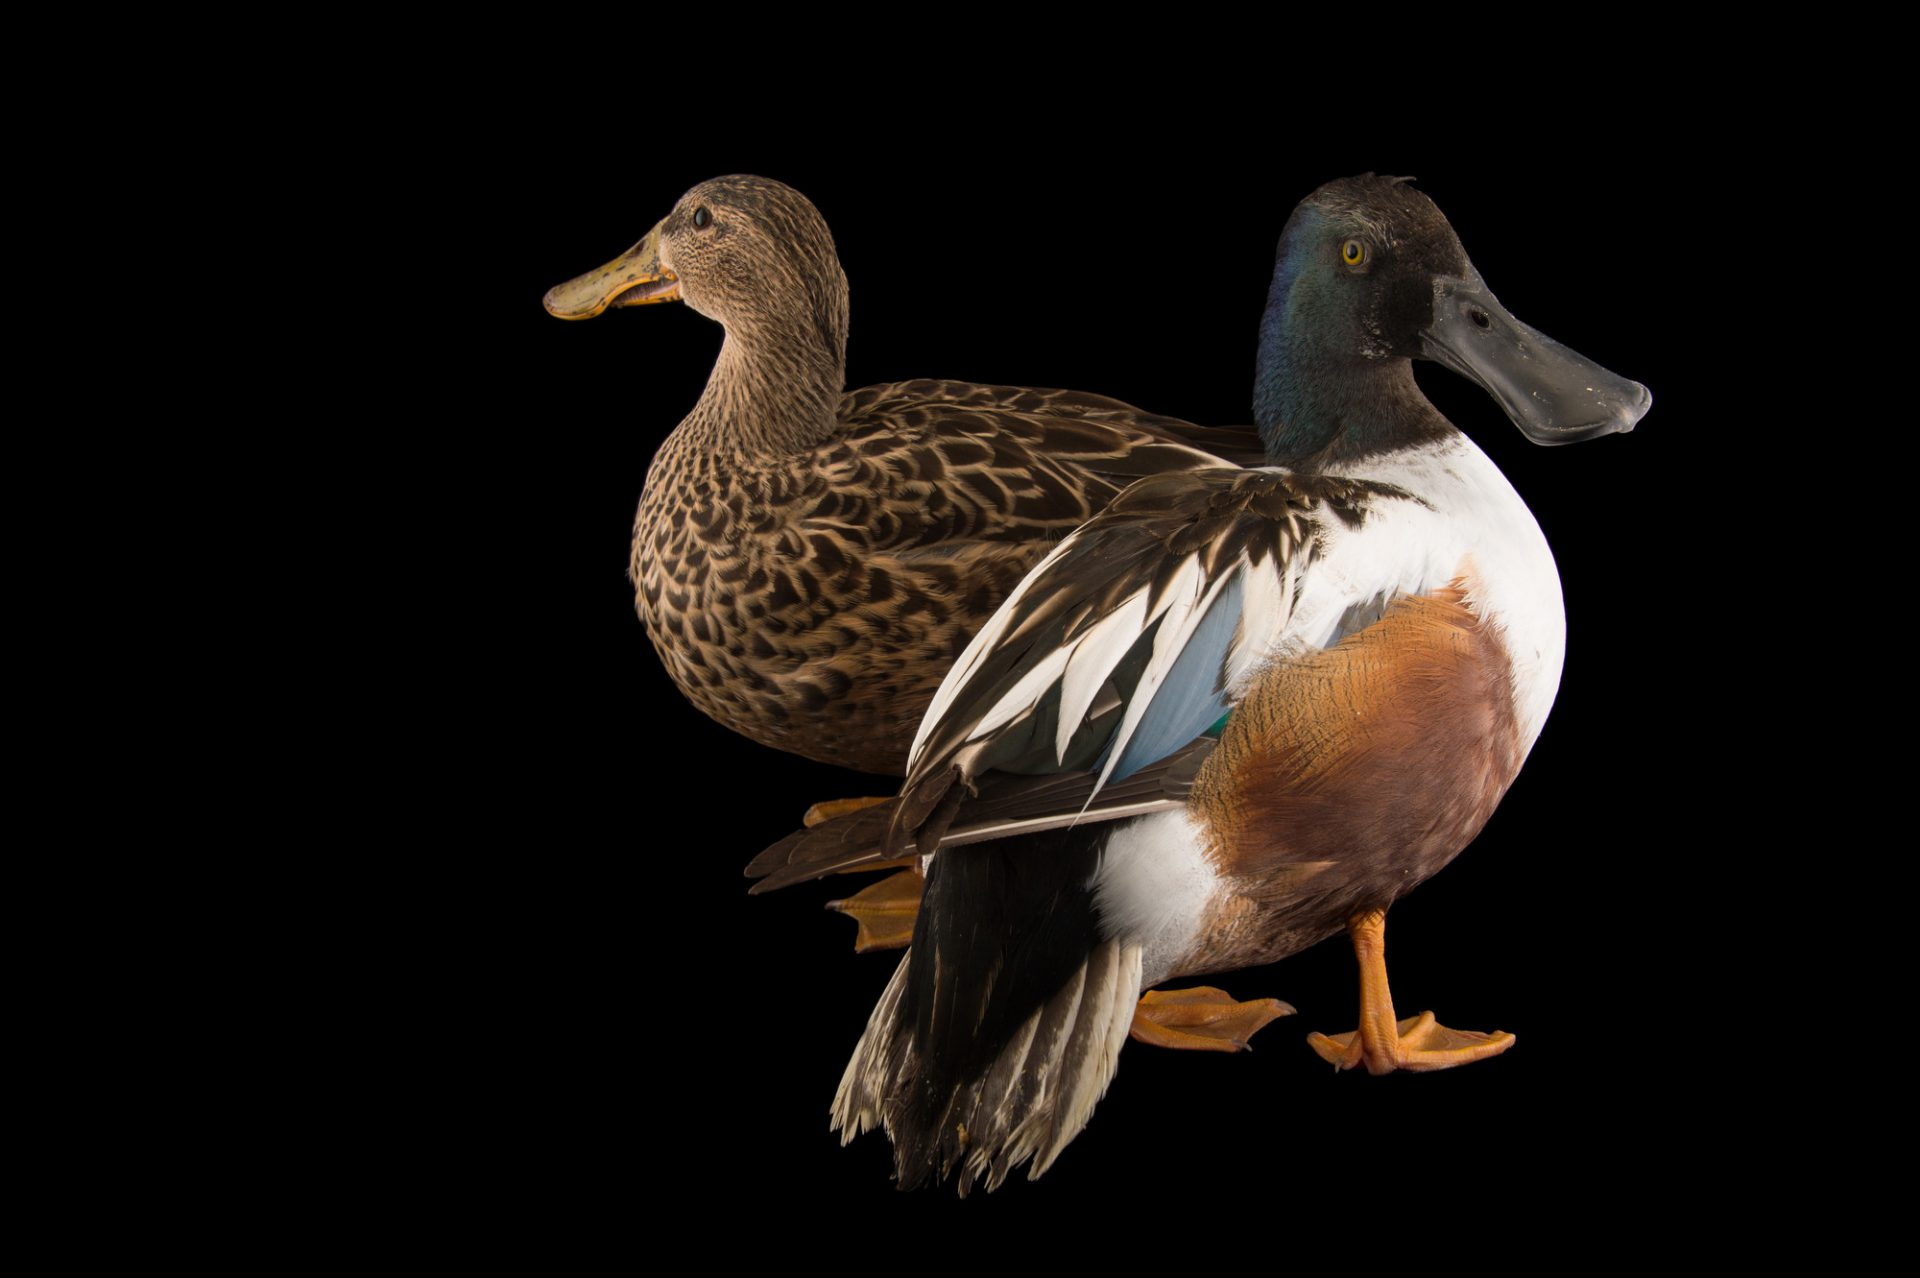 Picture of Northern shovelers (Anas clypeata) at the Sylvan Heights Bird Park.